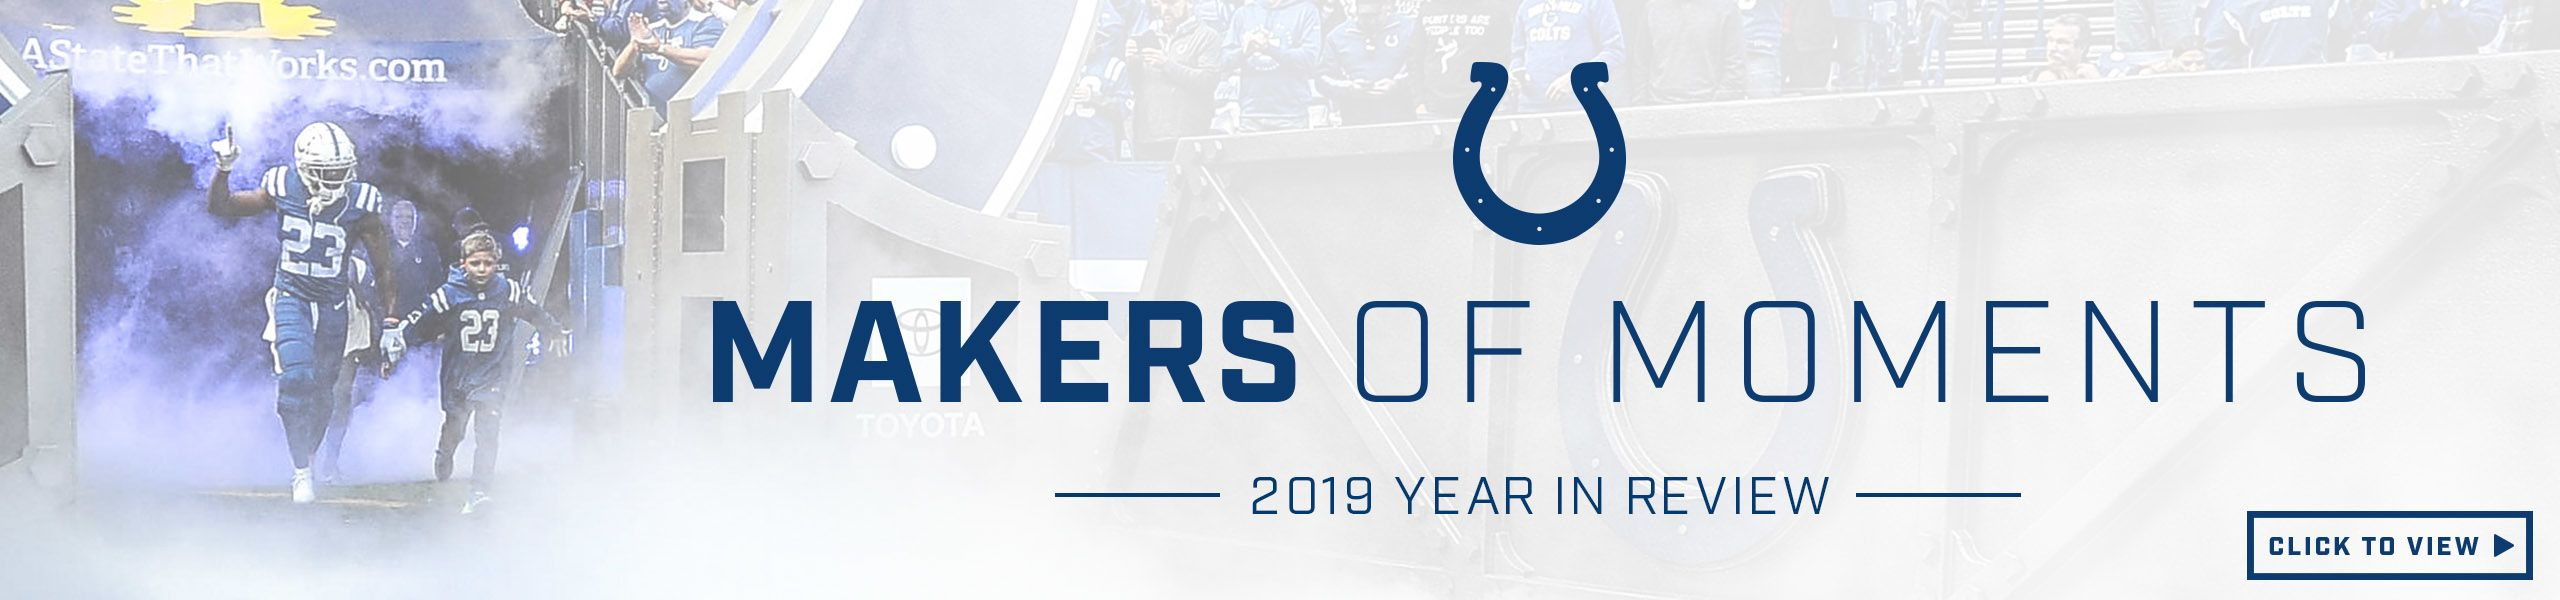 Makers Of Moments: 2019 Year In Review: Click To View